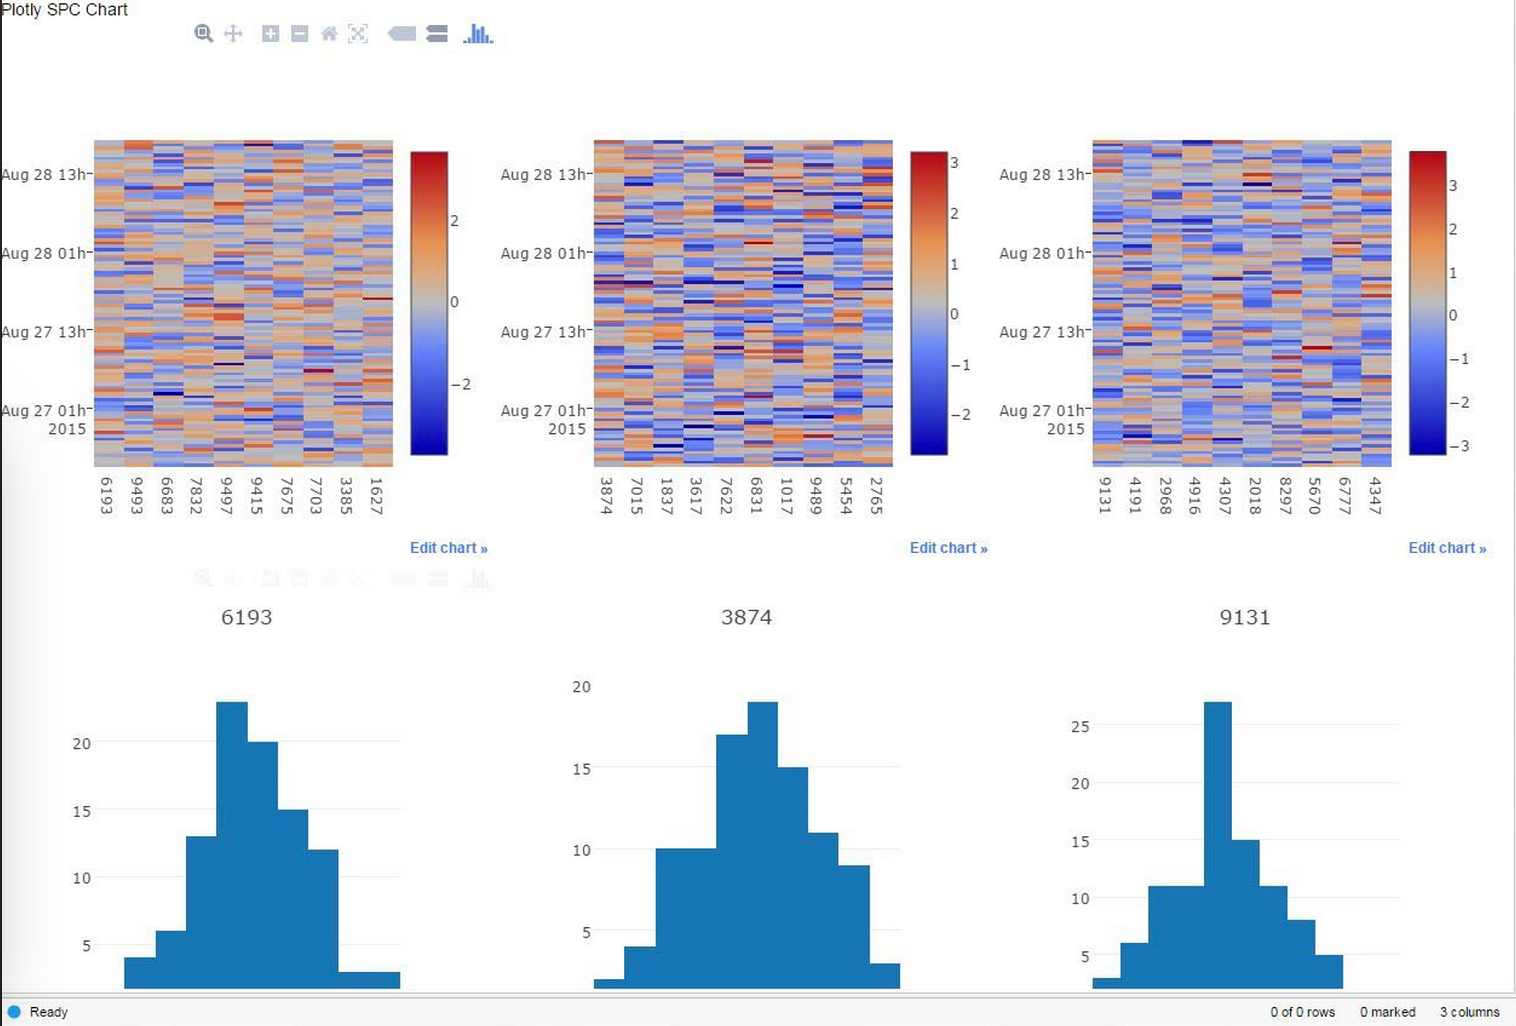 GitHub - plotly/spotfire: Create D3 js visualizations in spotfire